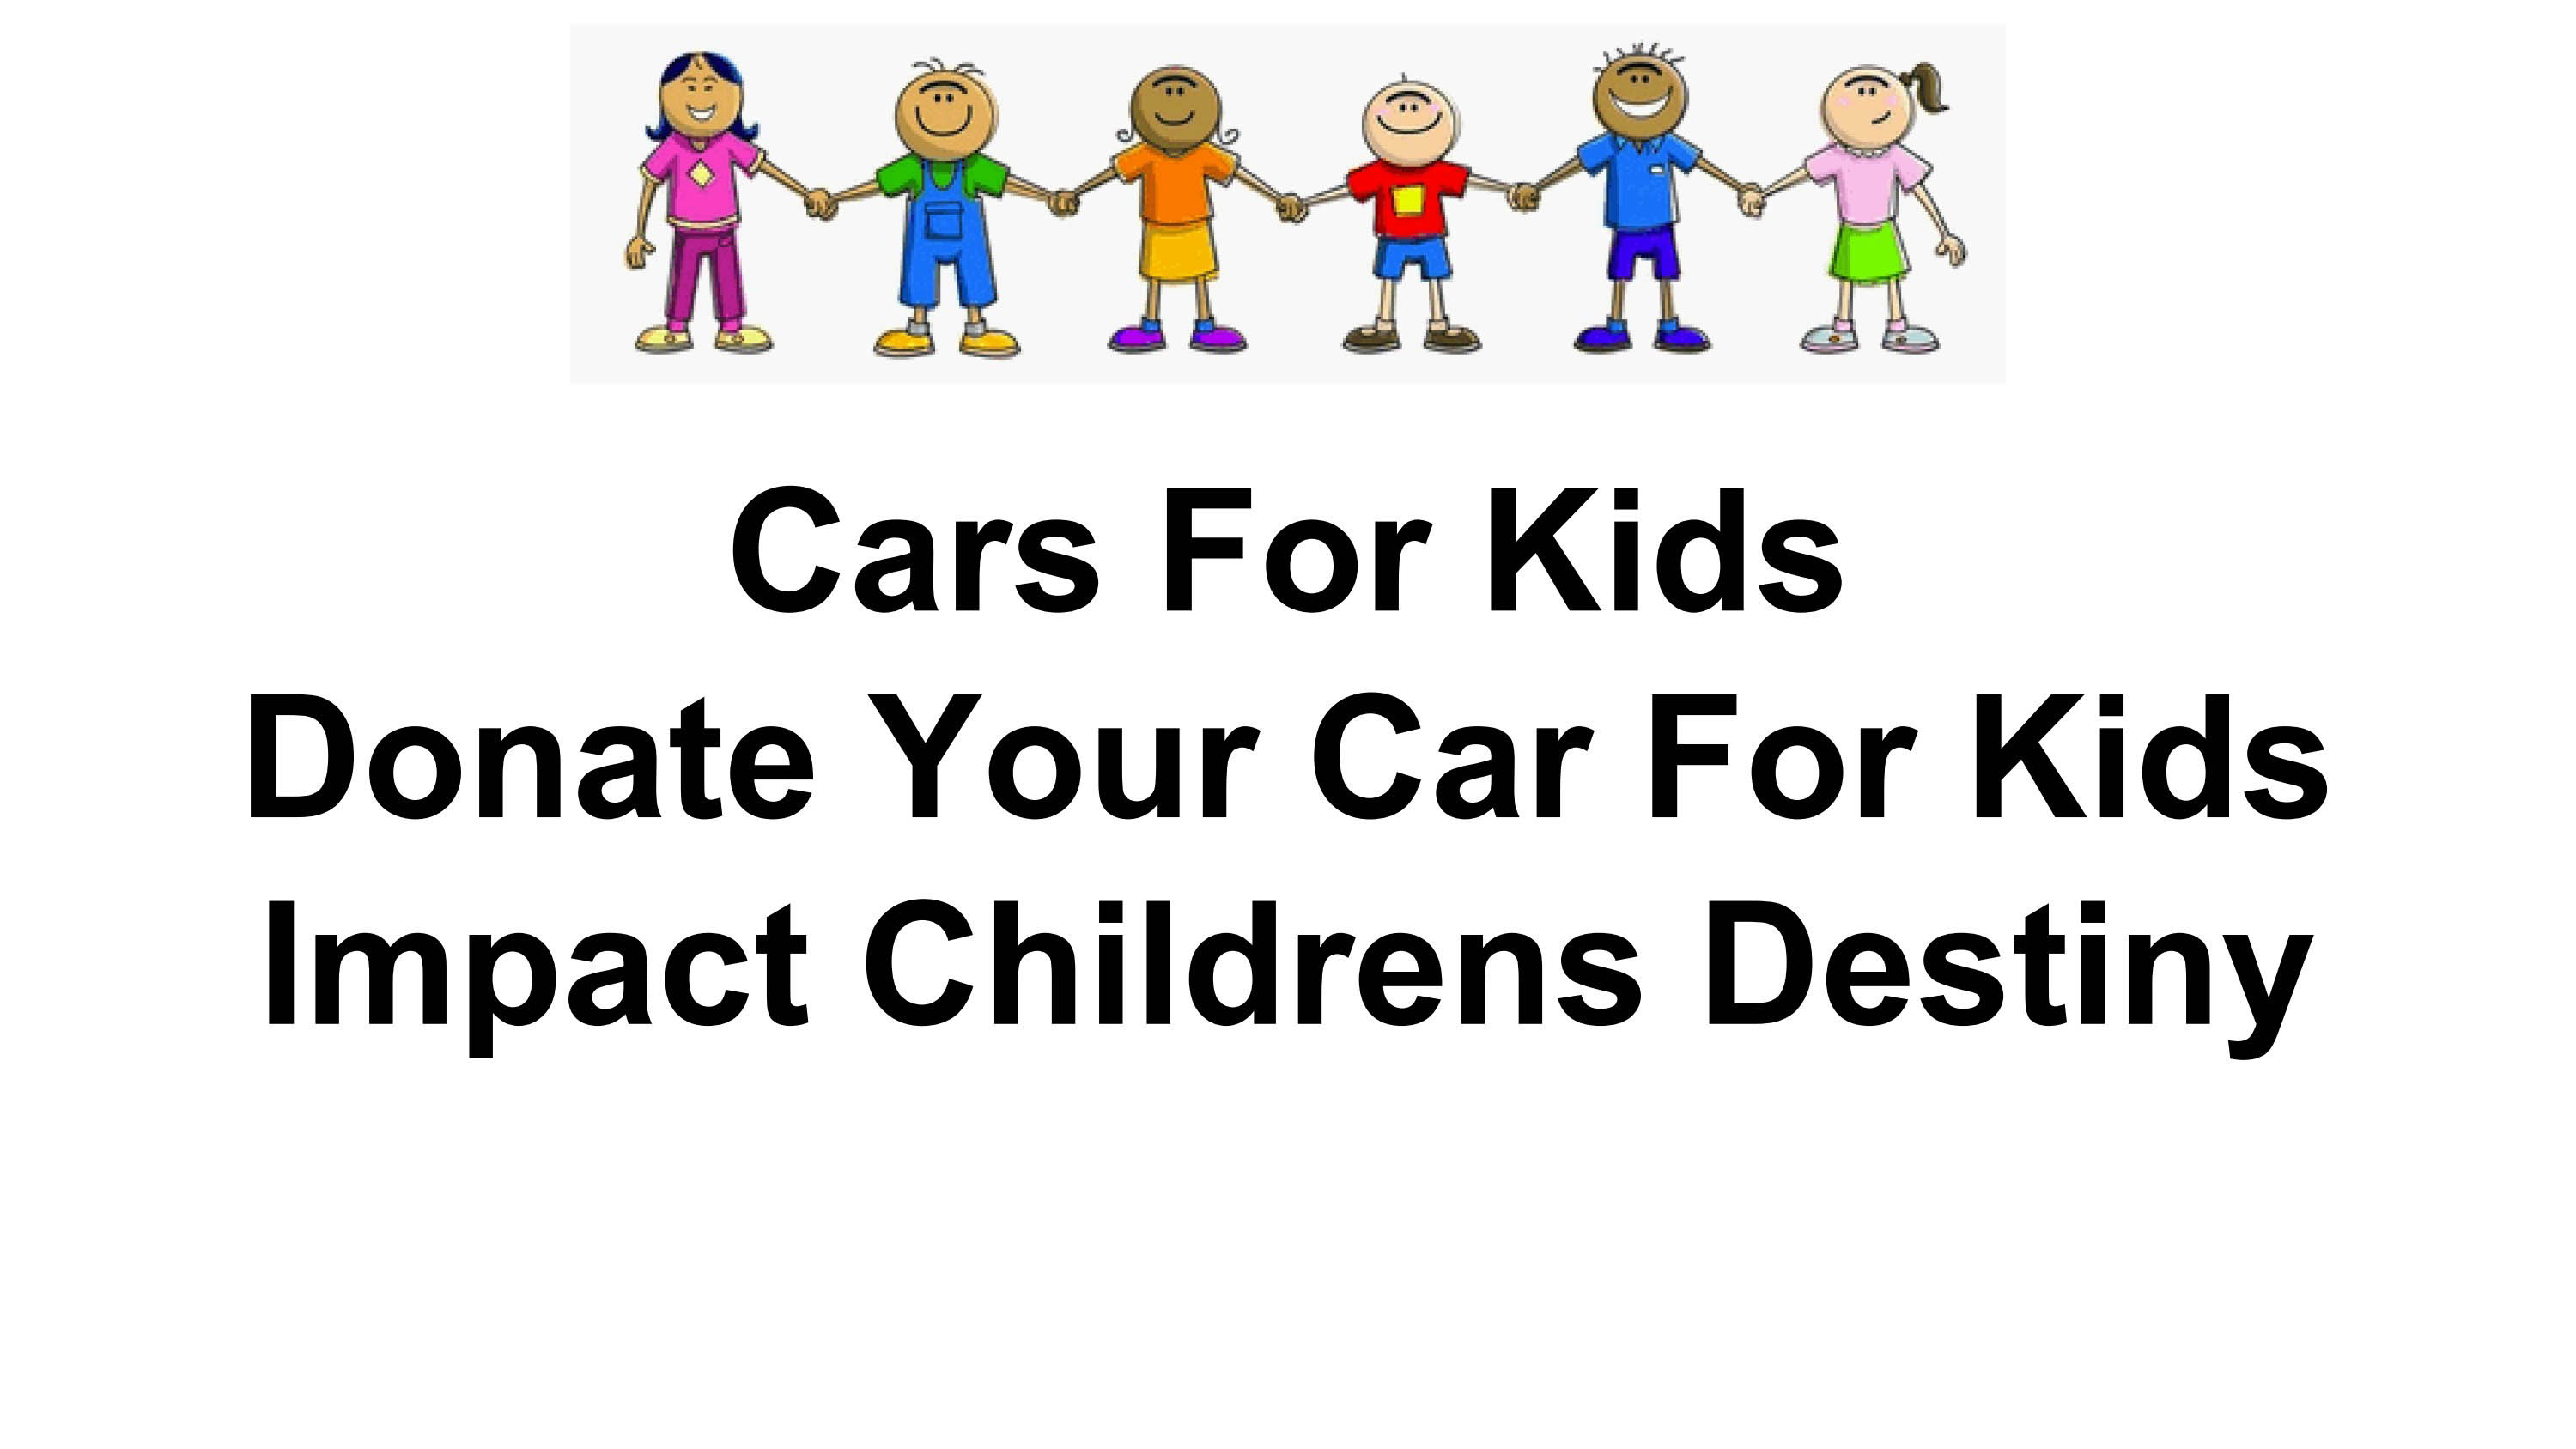 Donate your car for kids